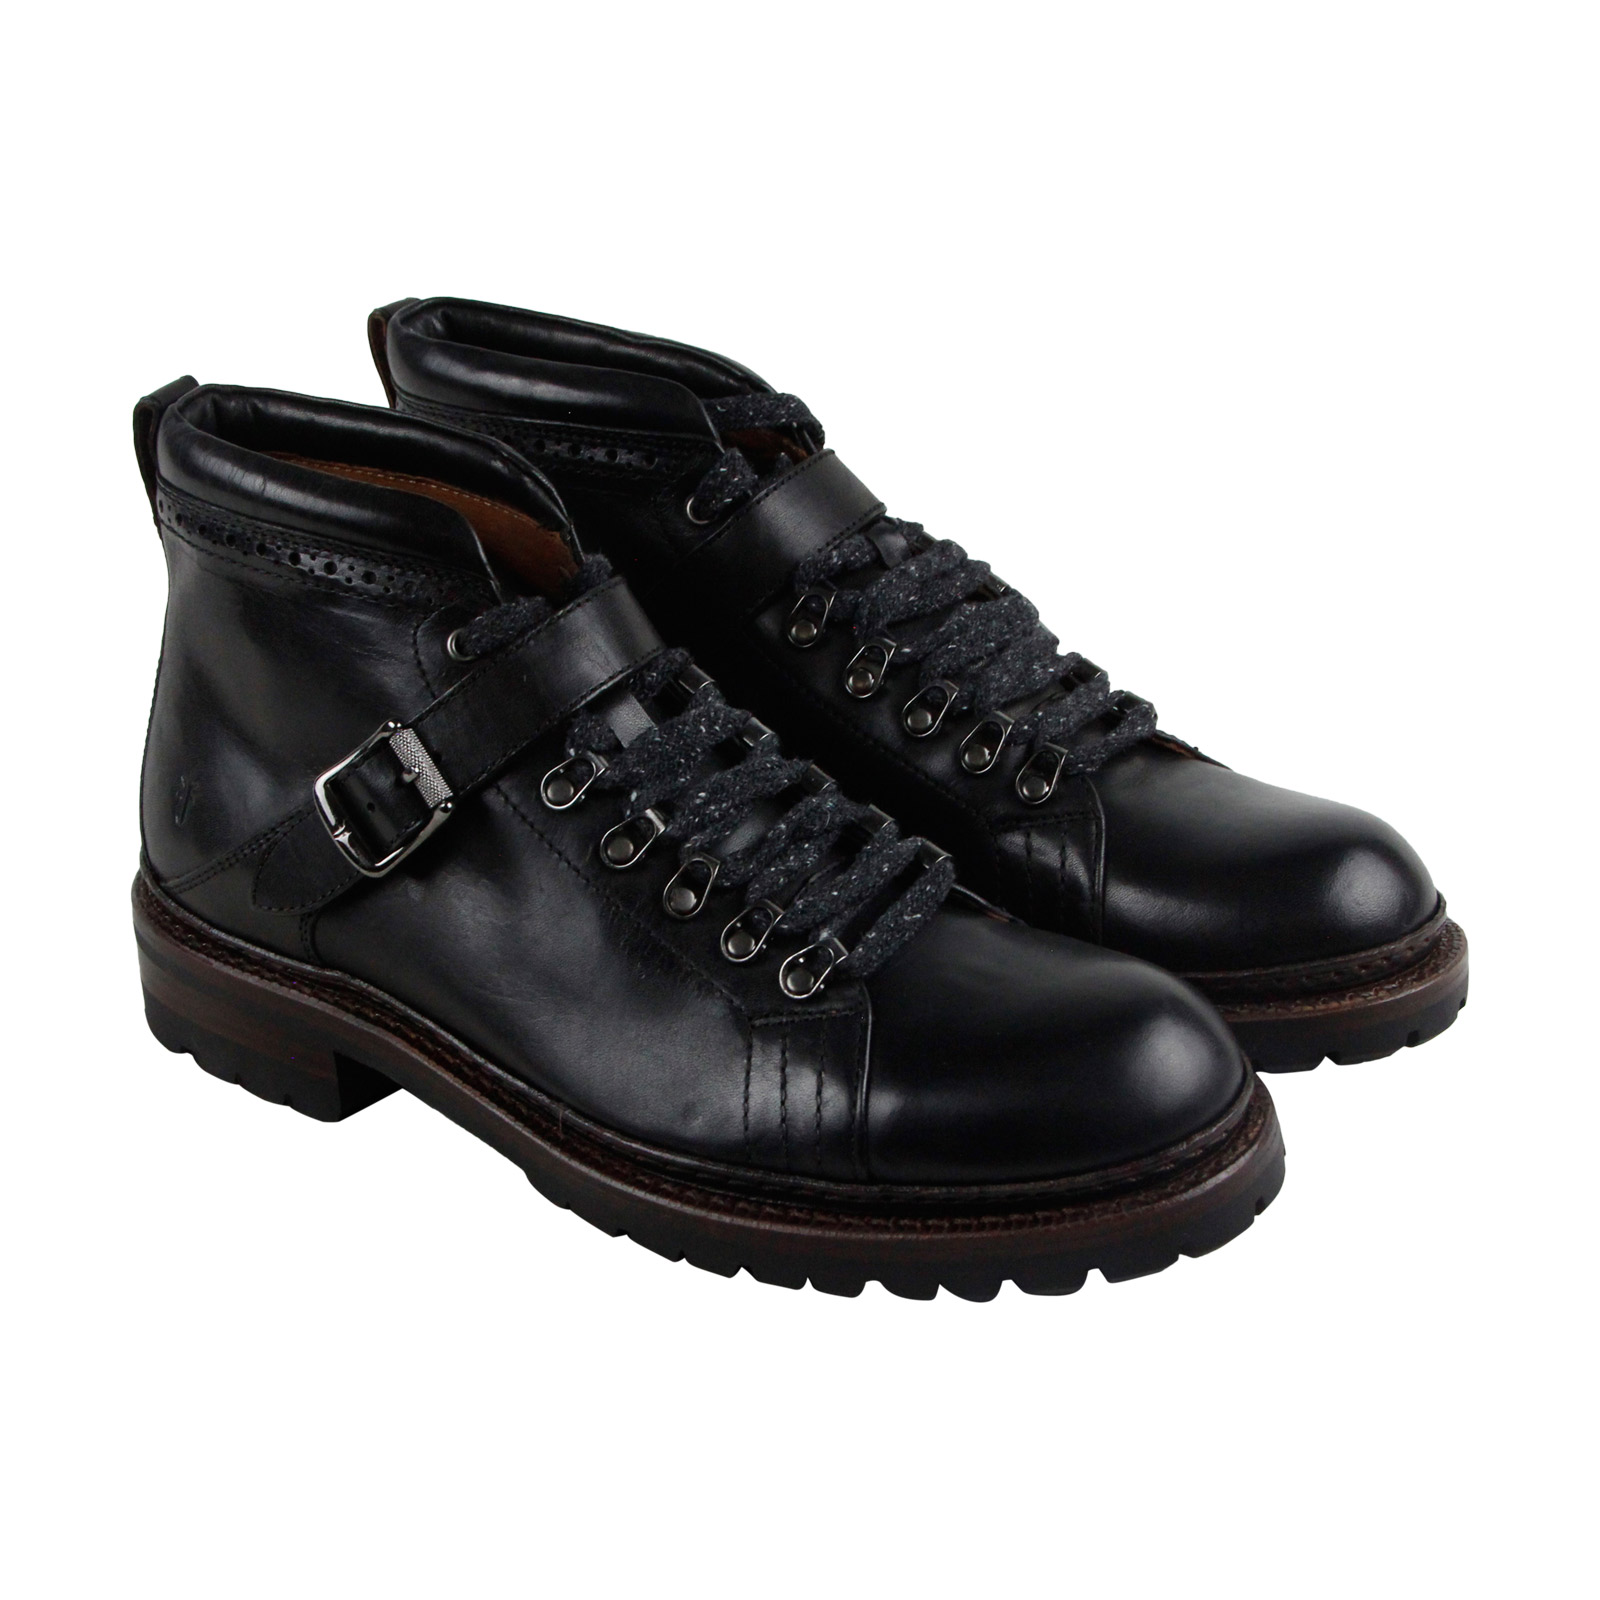 Frye George Norwegian Mens Black Leather Casual Casual Leather Dress Lace Up Boots Shoes 014ac3